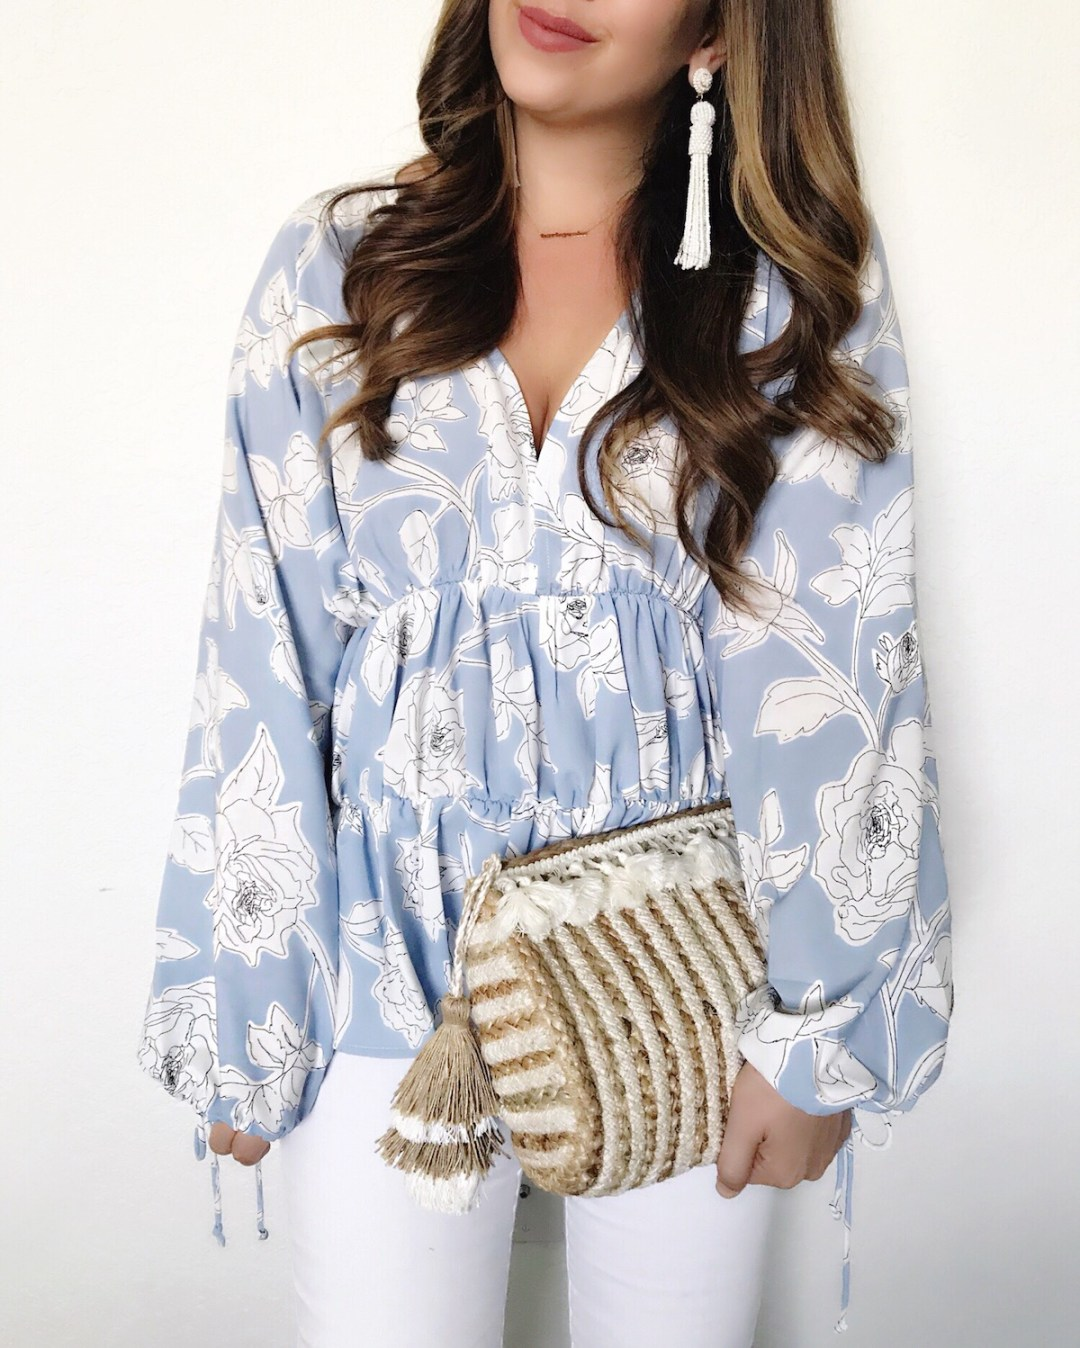 blue floral top, woven basket clutch, woven straw clutch, baublebar beaded tassel earrings